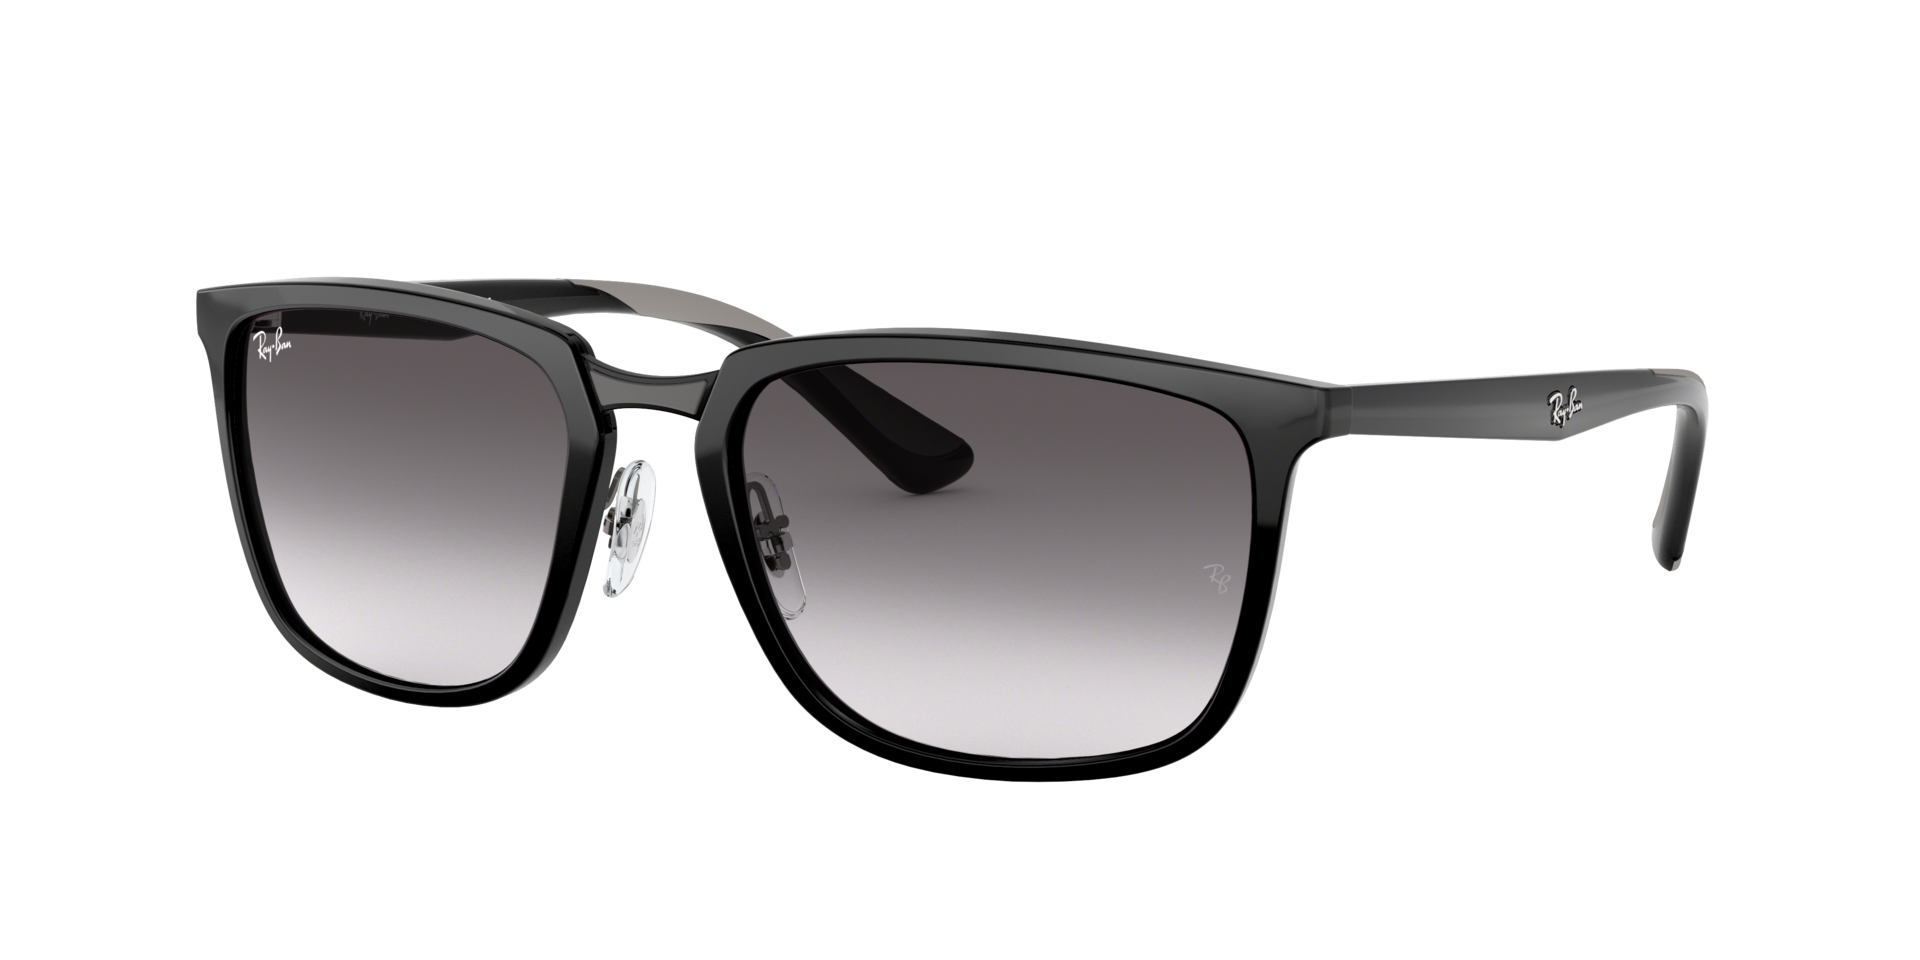 sunglasses - Vision Works Optometrists e23916c08d